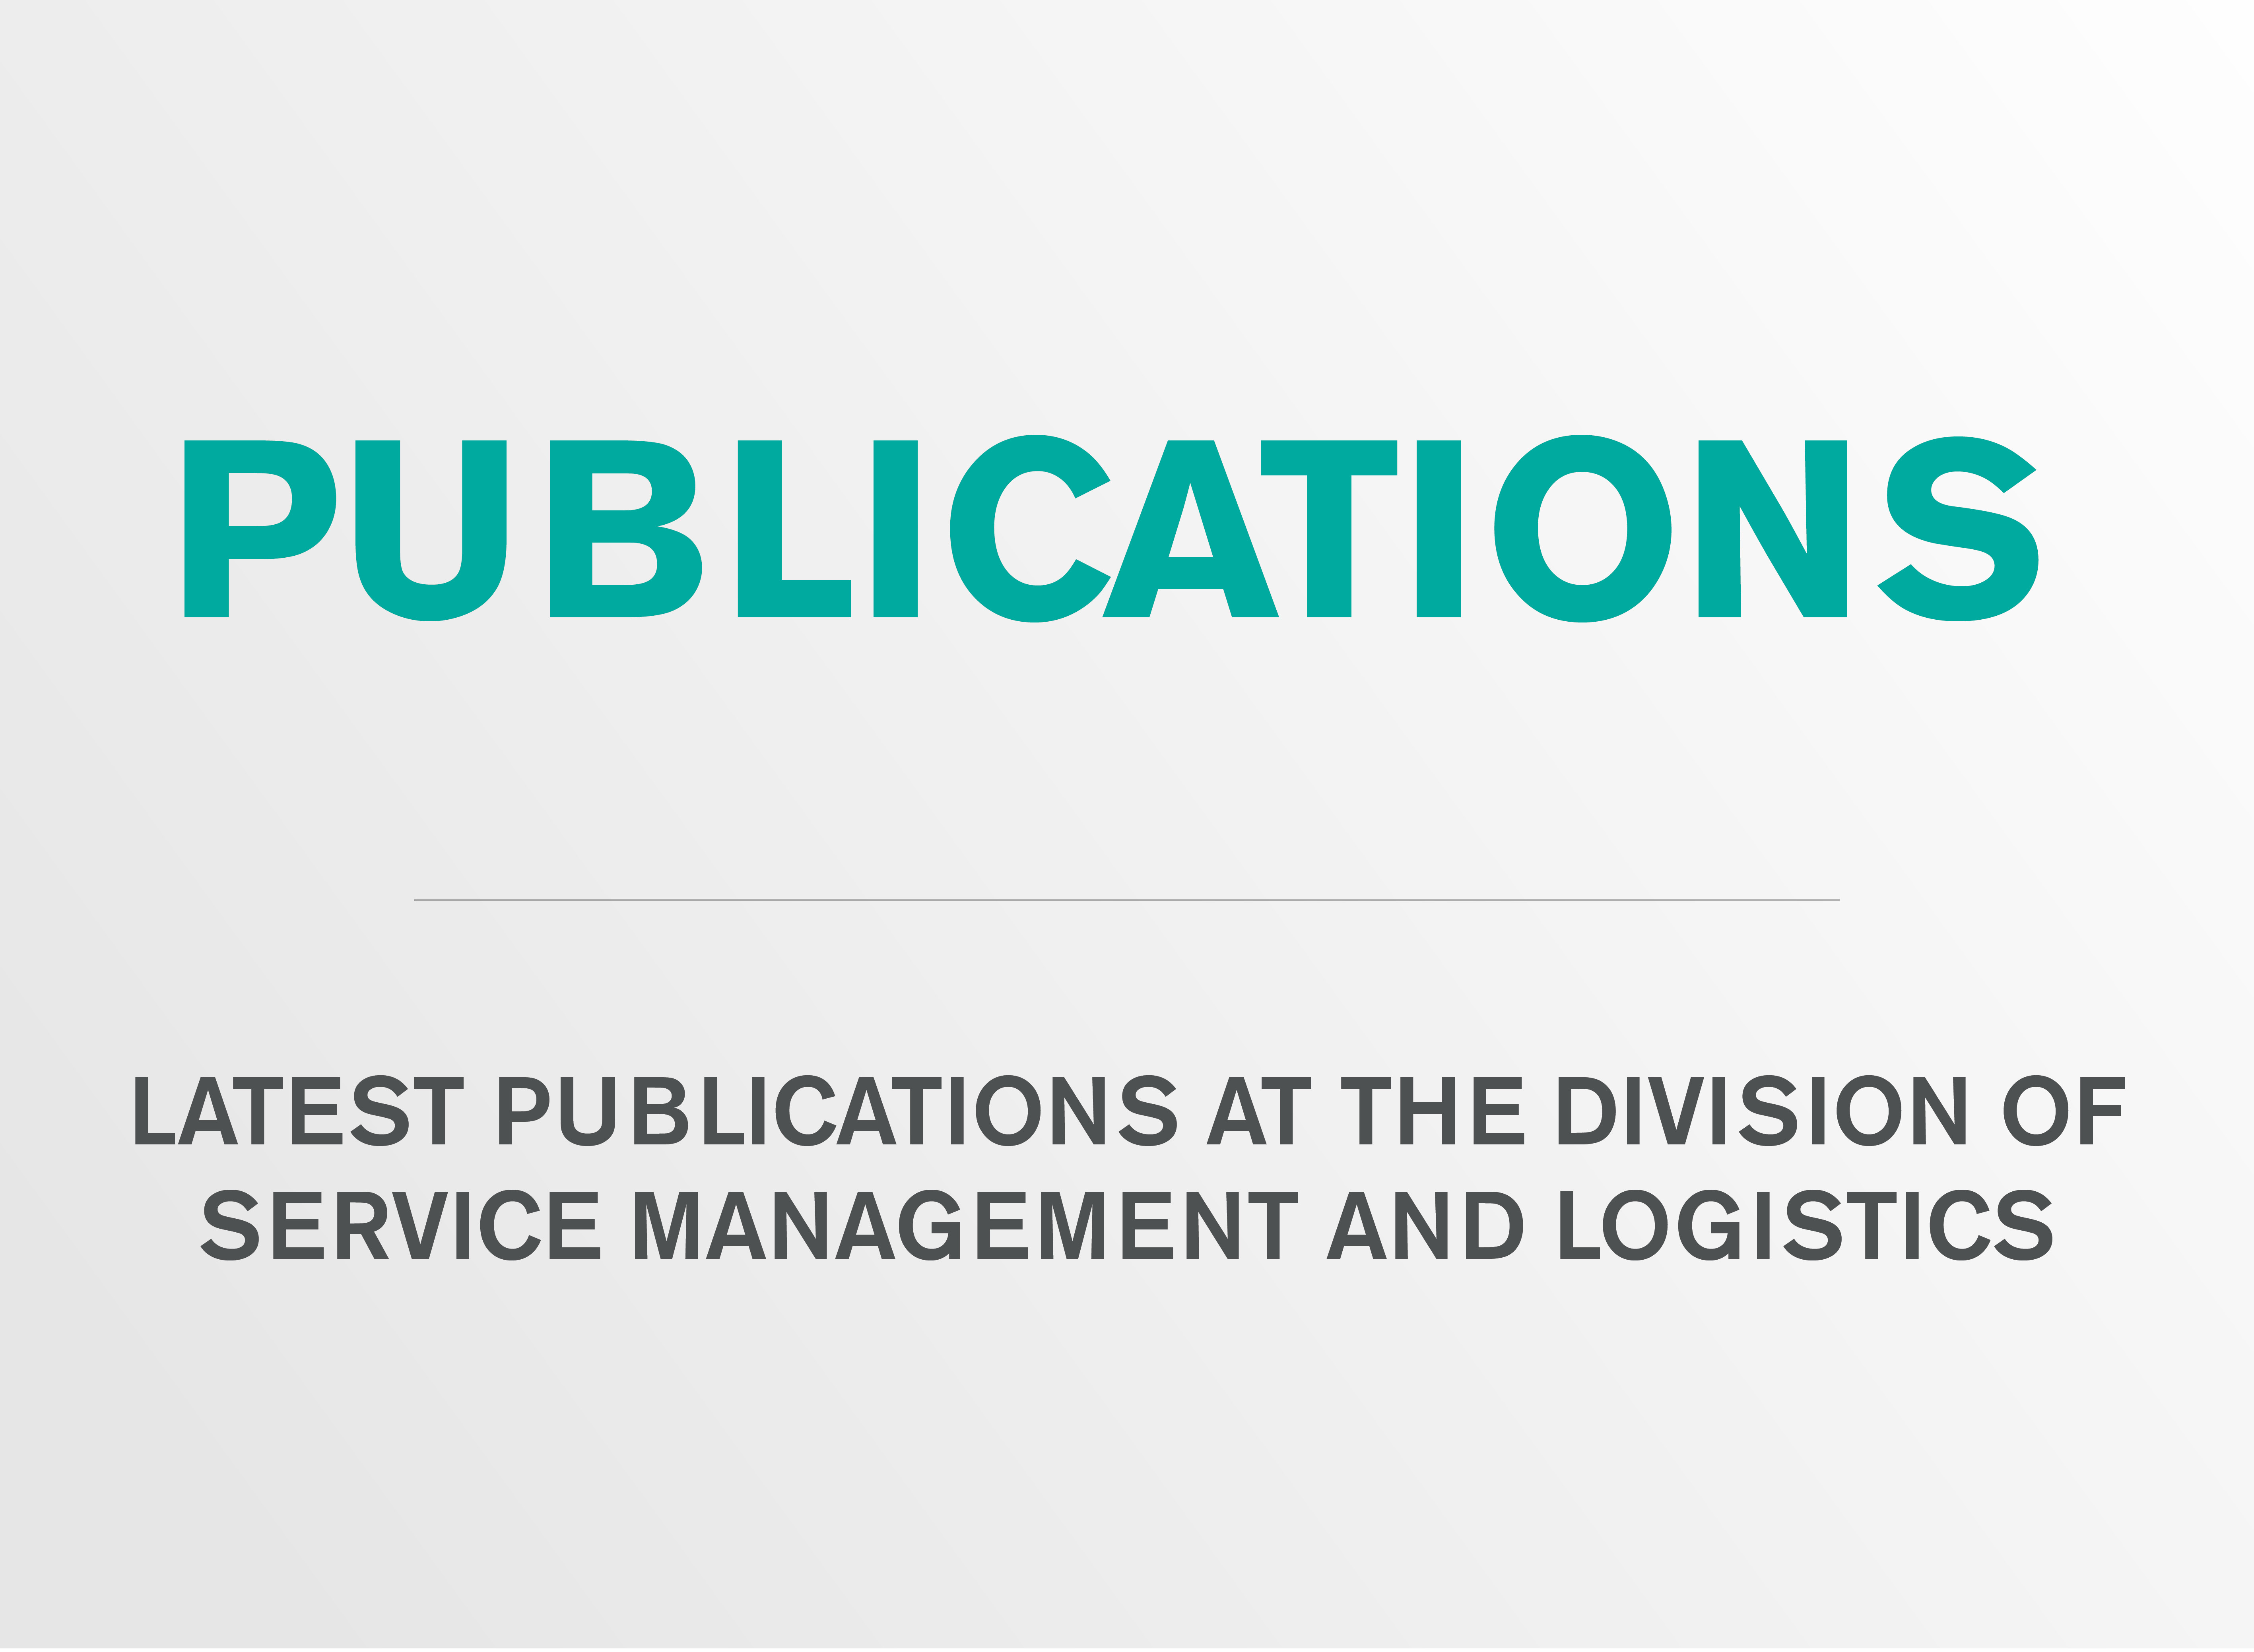 Publications at the division of Service Management and Logistics.